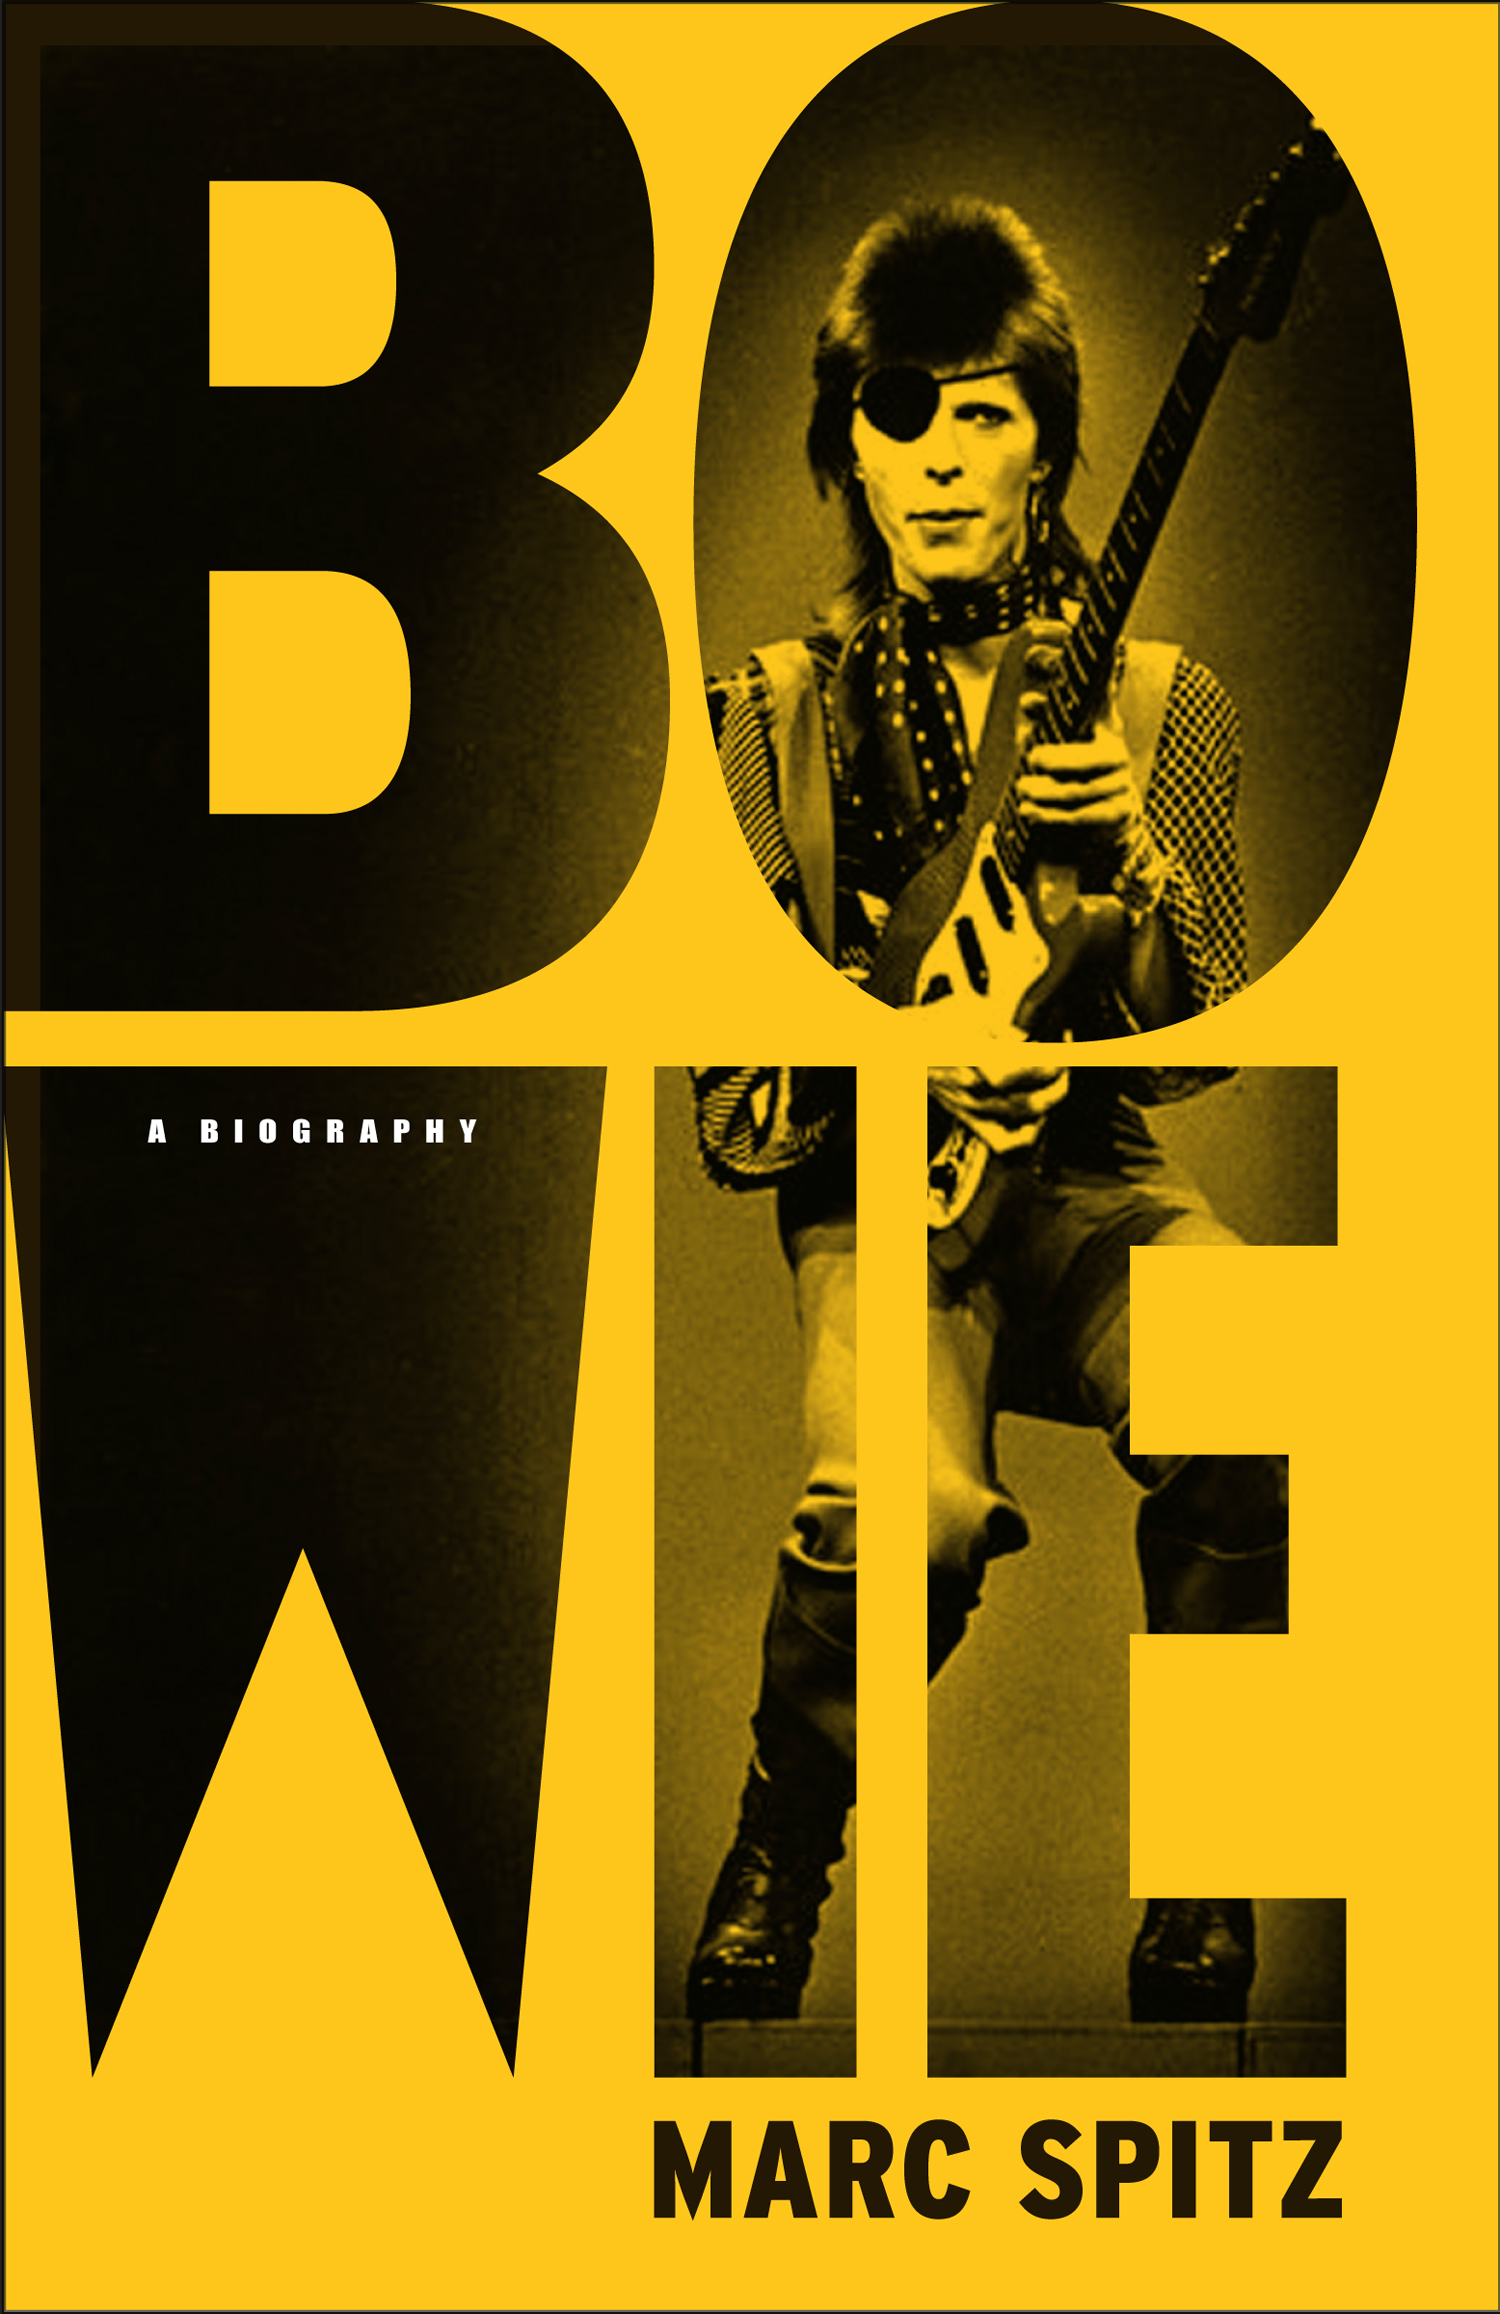 BOWIE-tpb-comp2-ss6.jpg